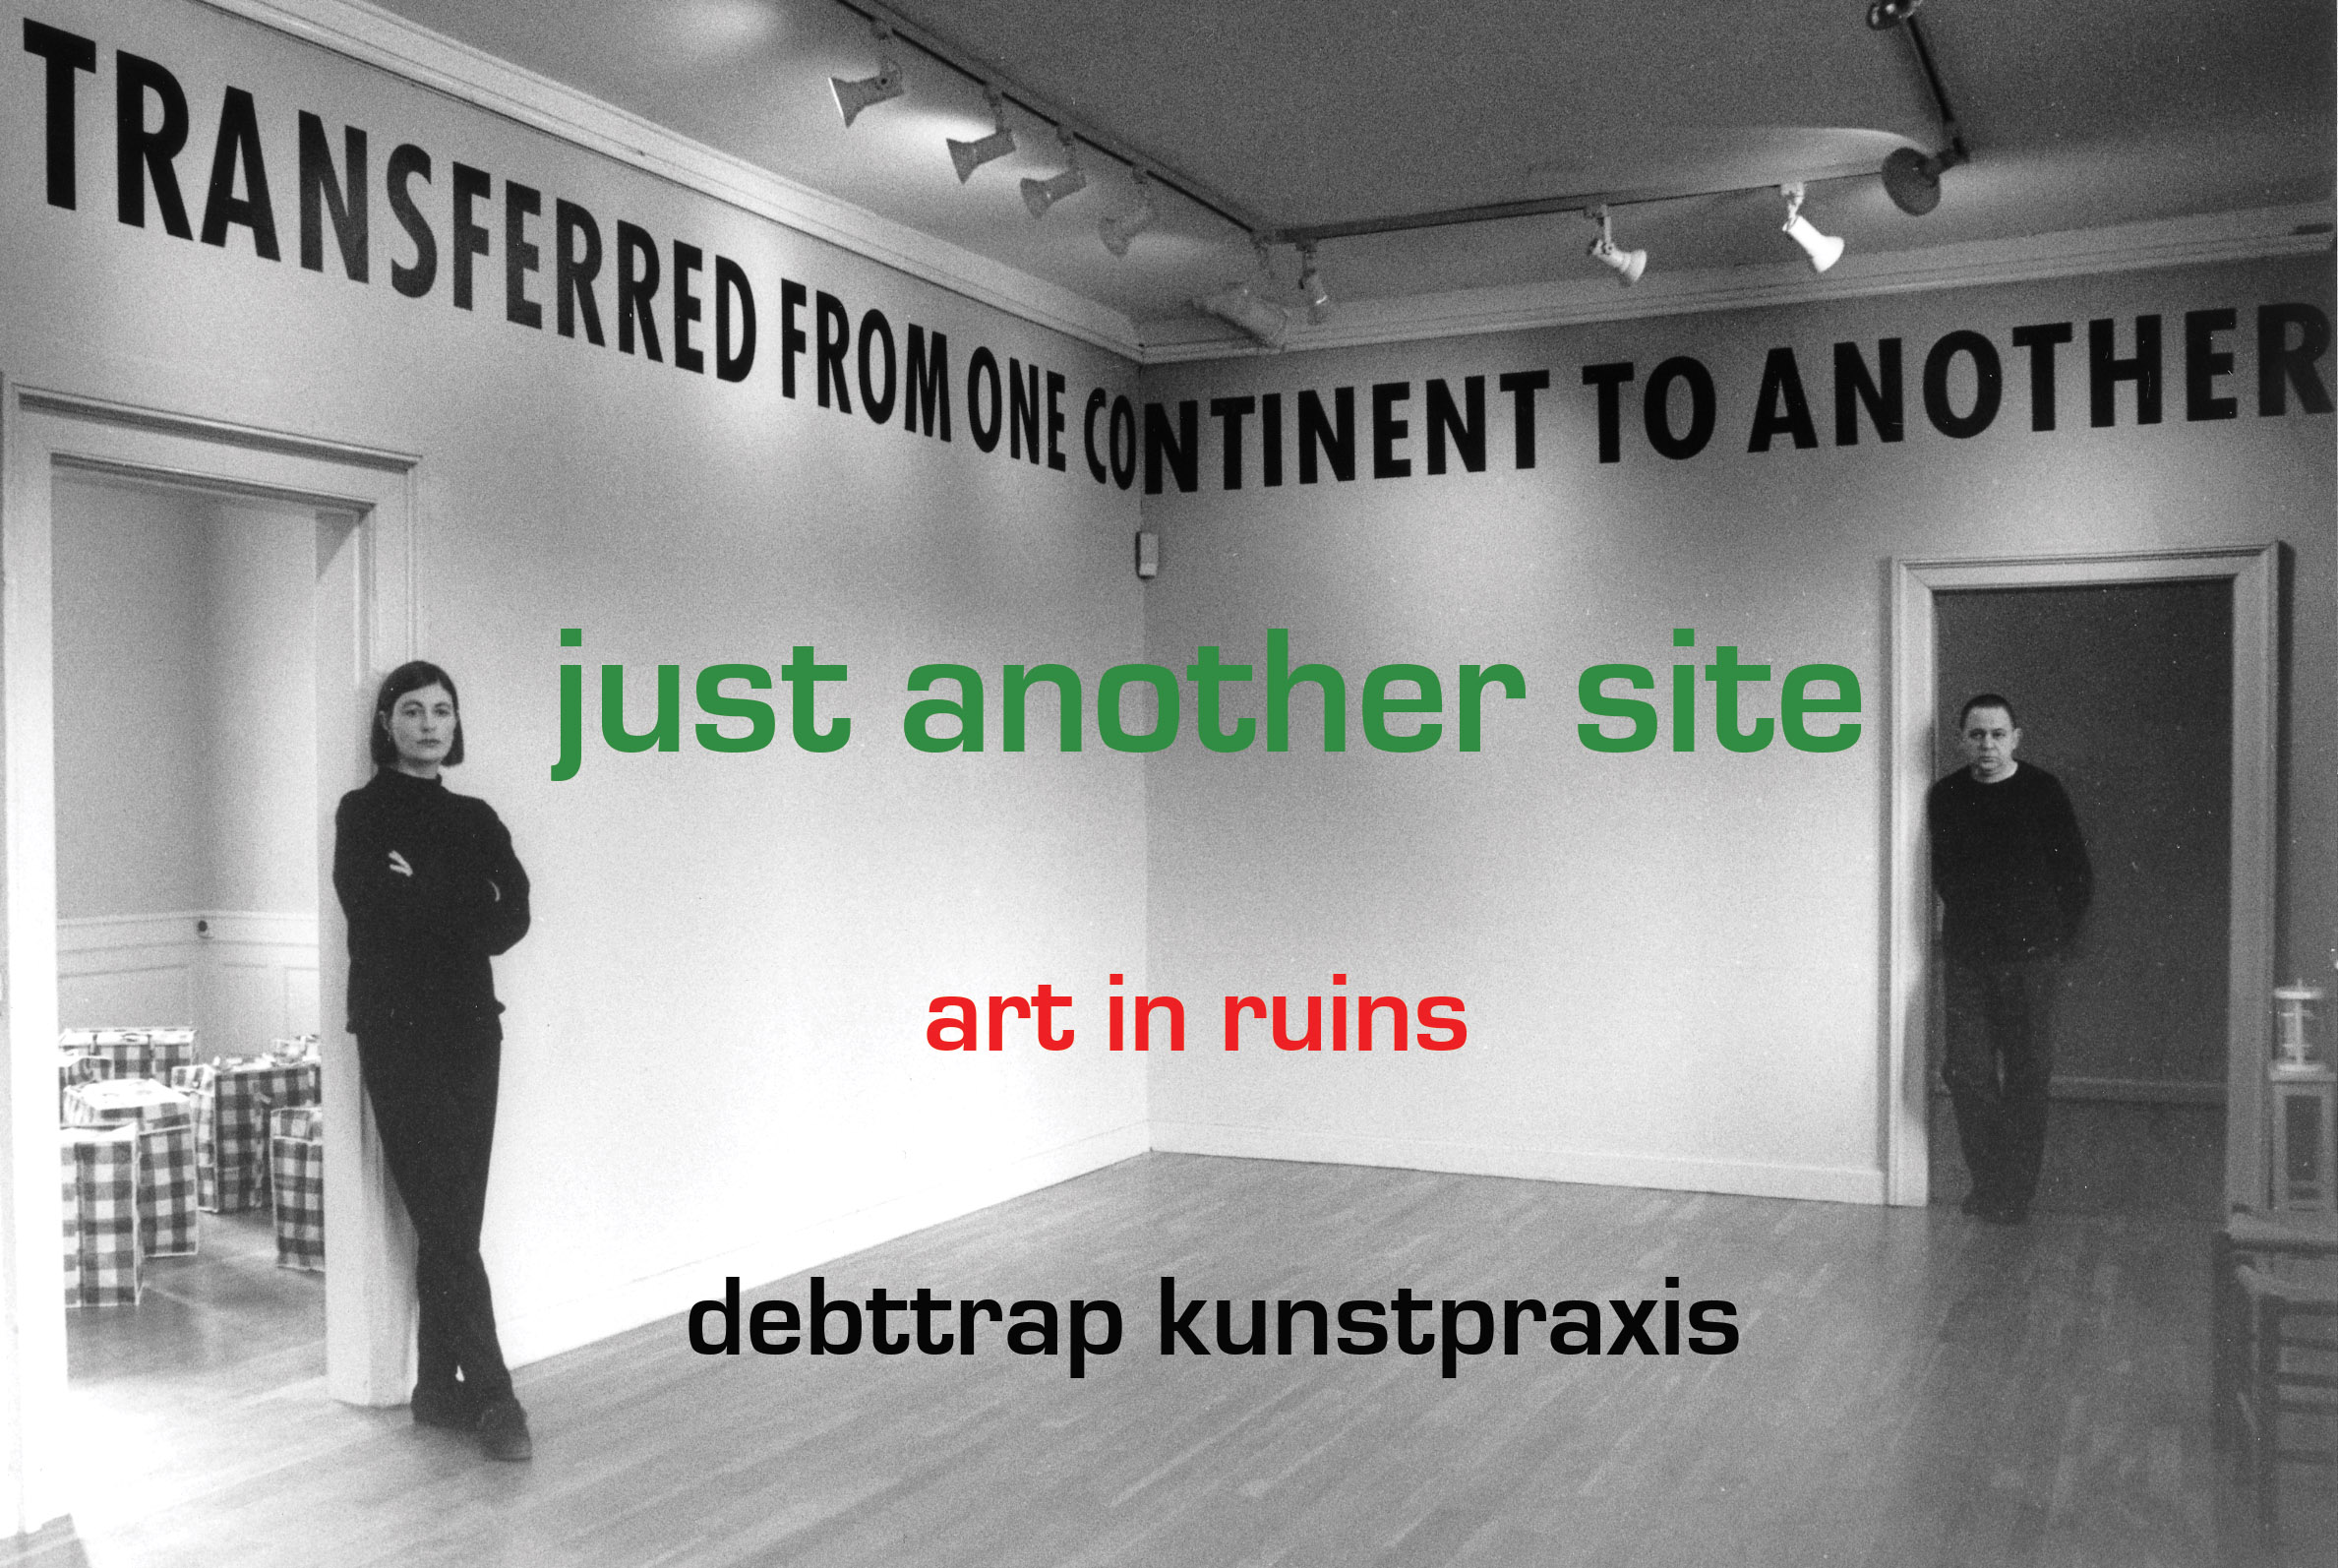 debt trap kunst praxis